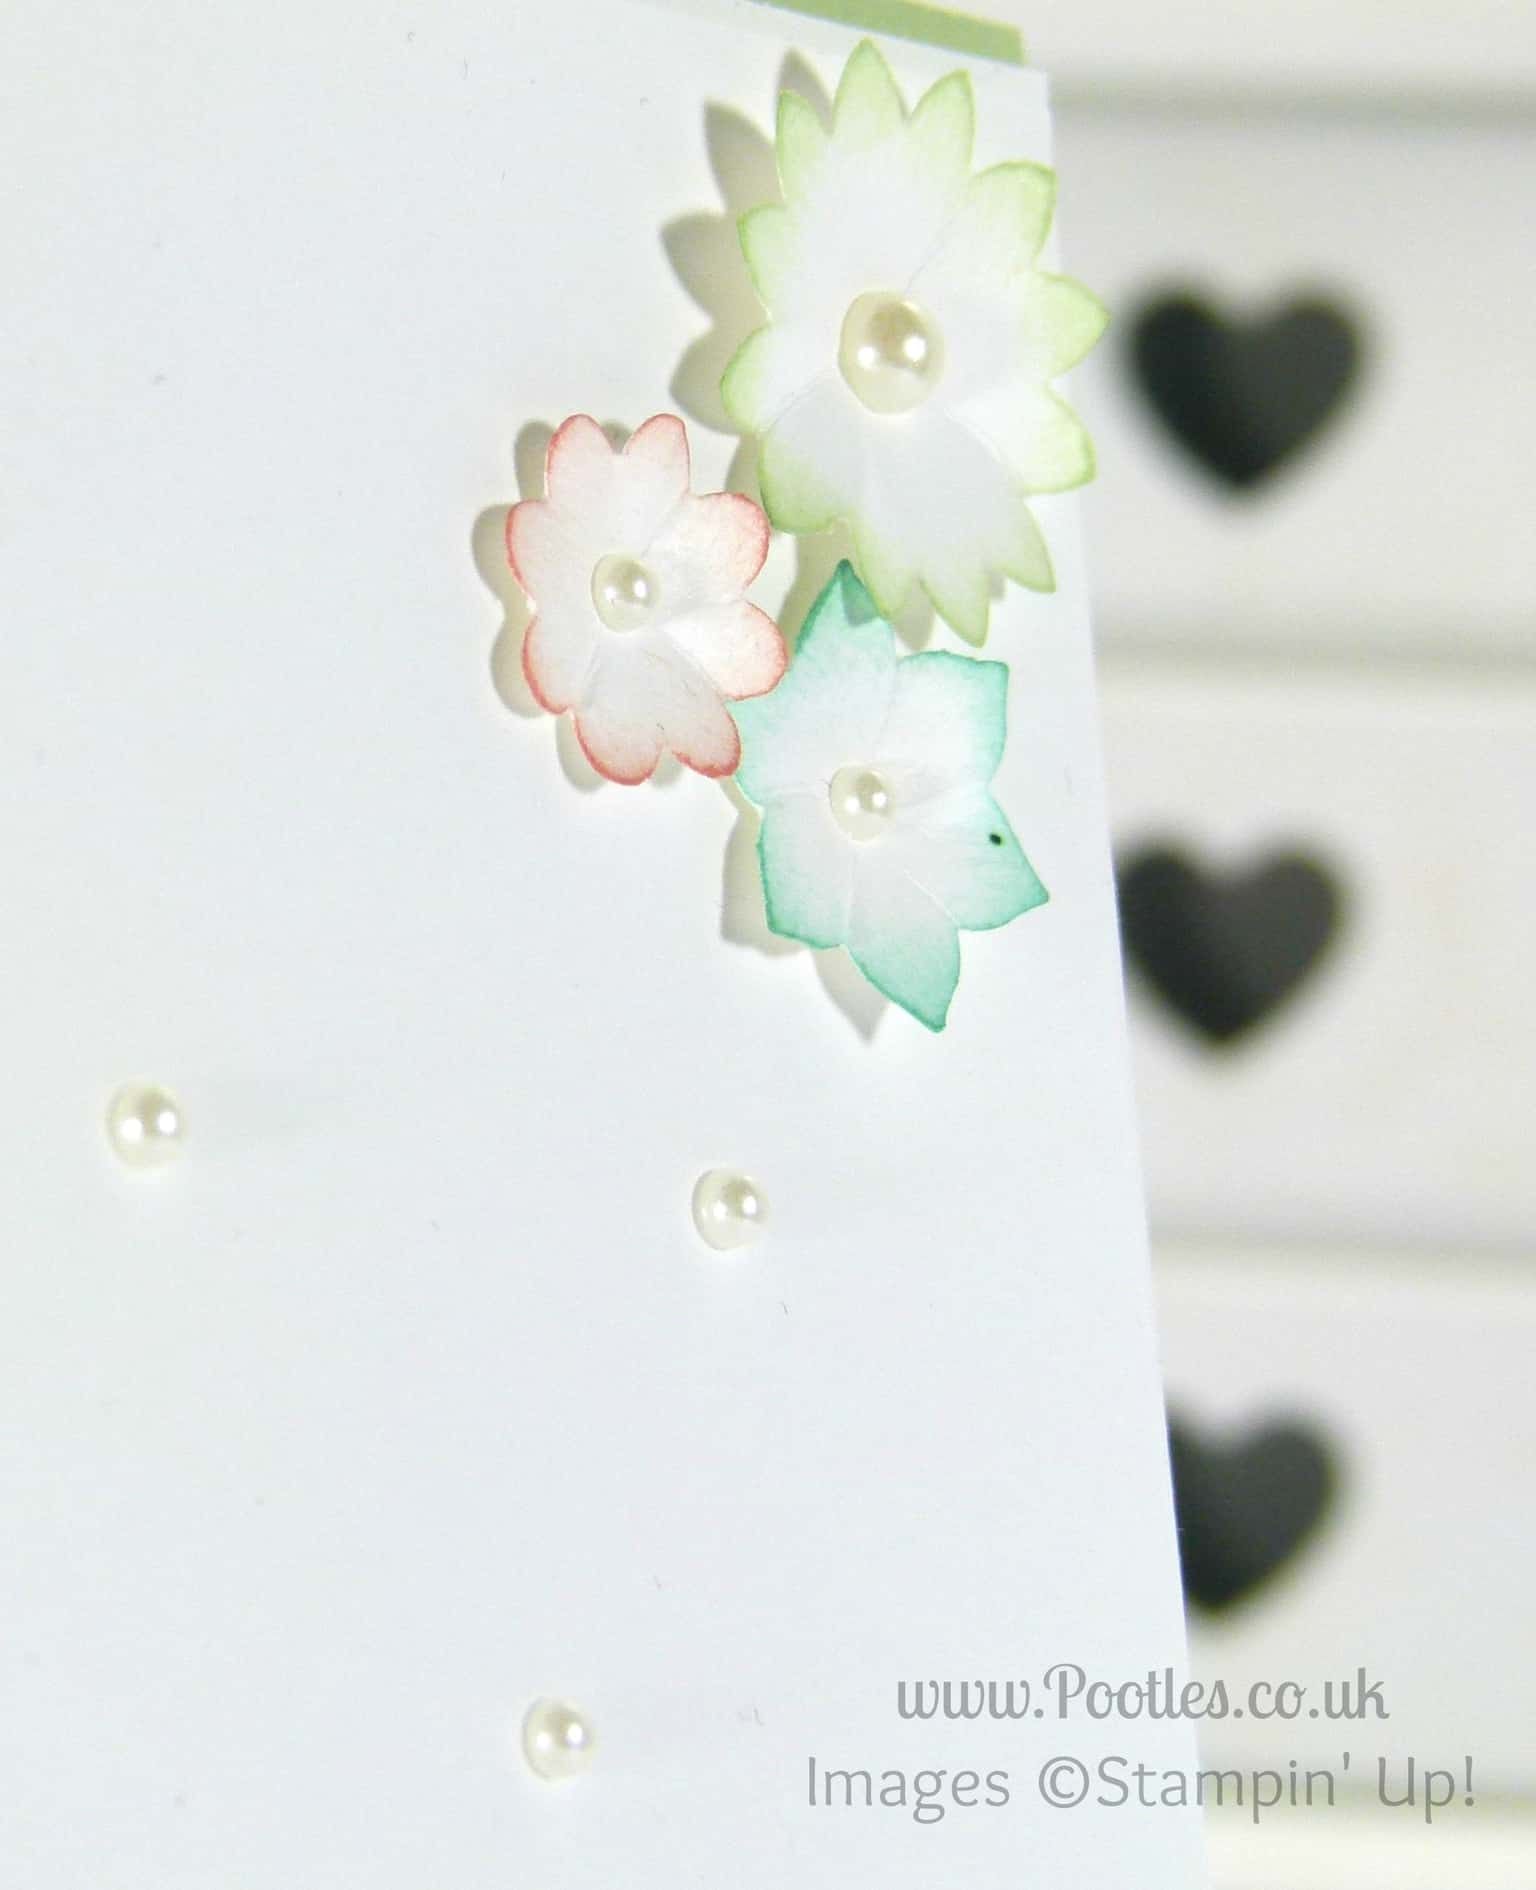 Stampin' Up! Demonstrator - Pootles. Background Stamped Punch Outs using ©Stampin' Up! Summer Sillhouettes Flower Detail